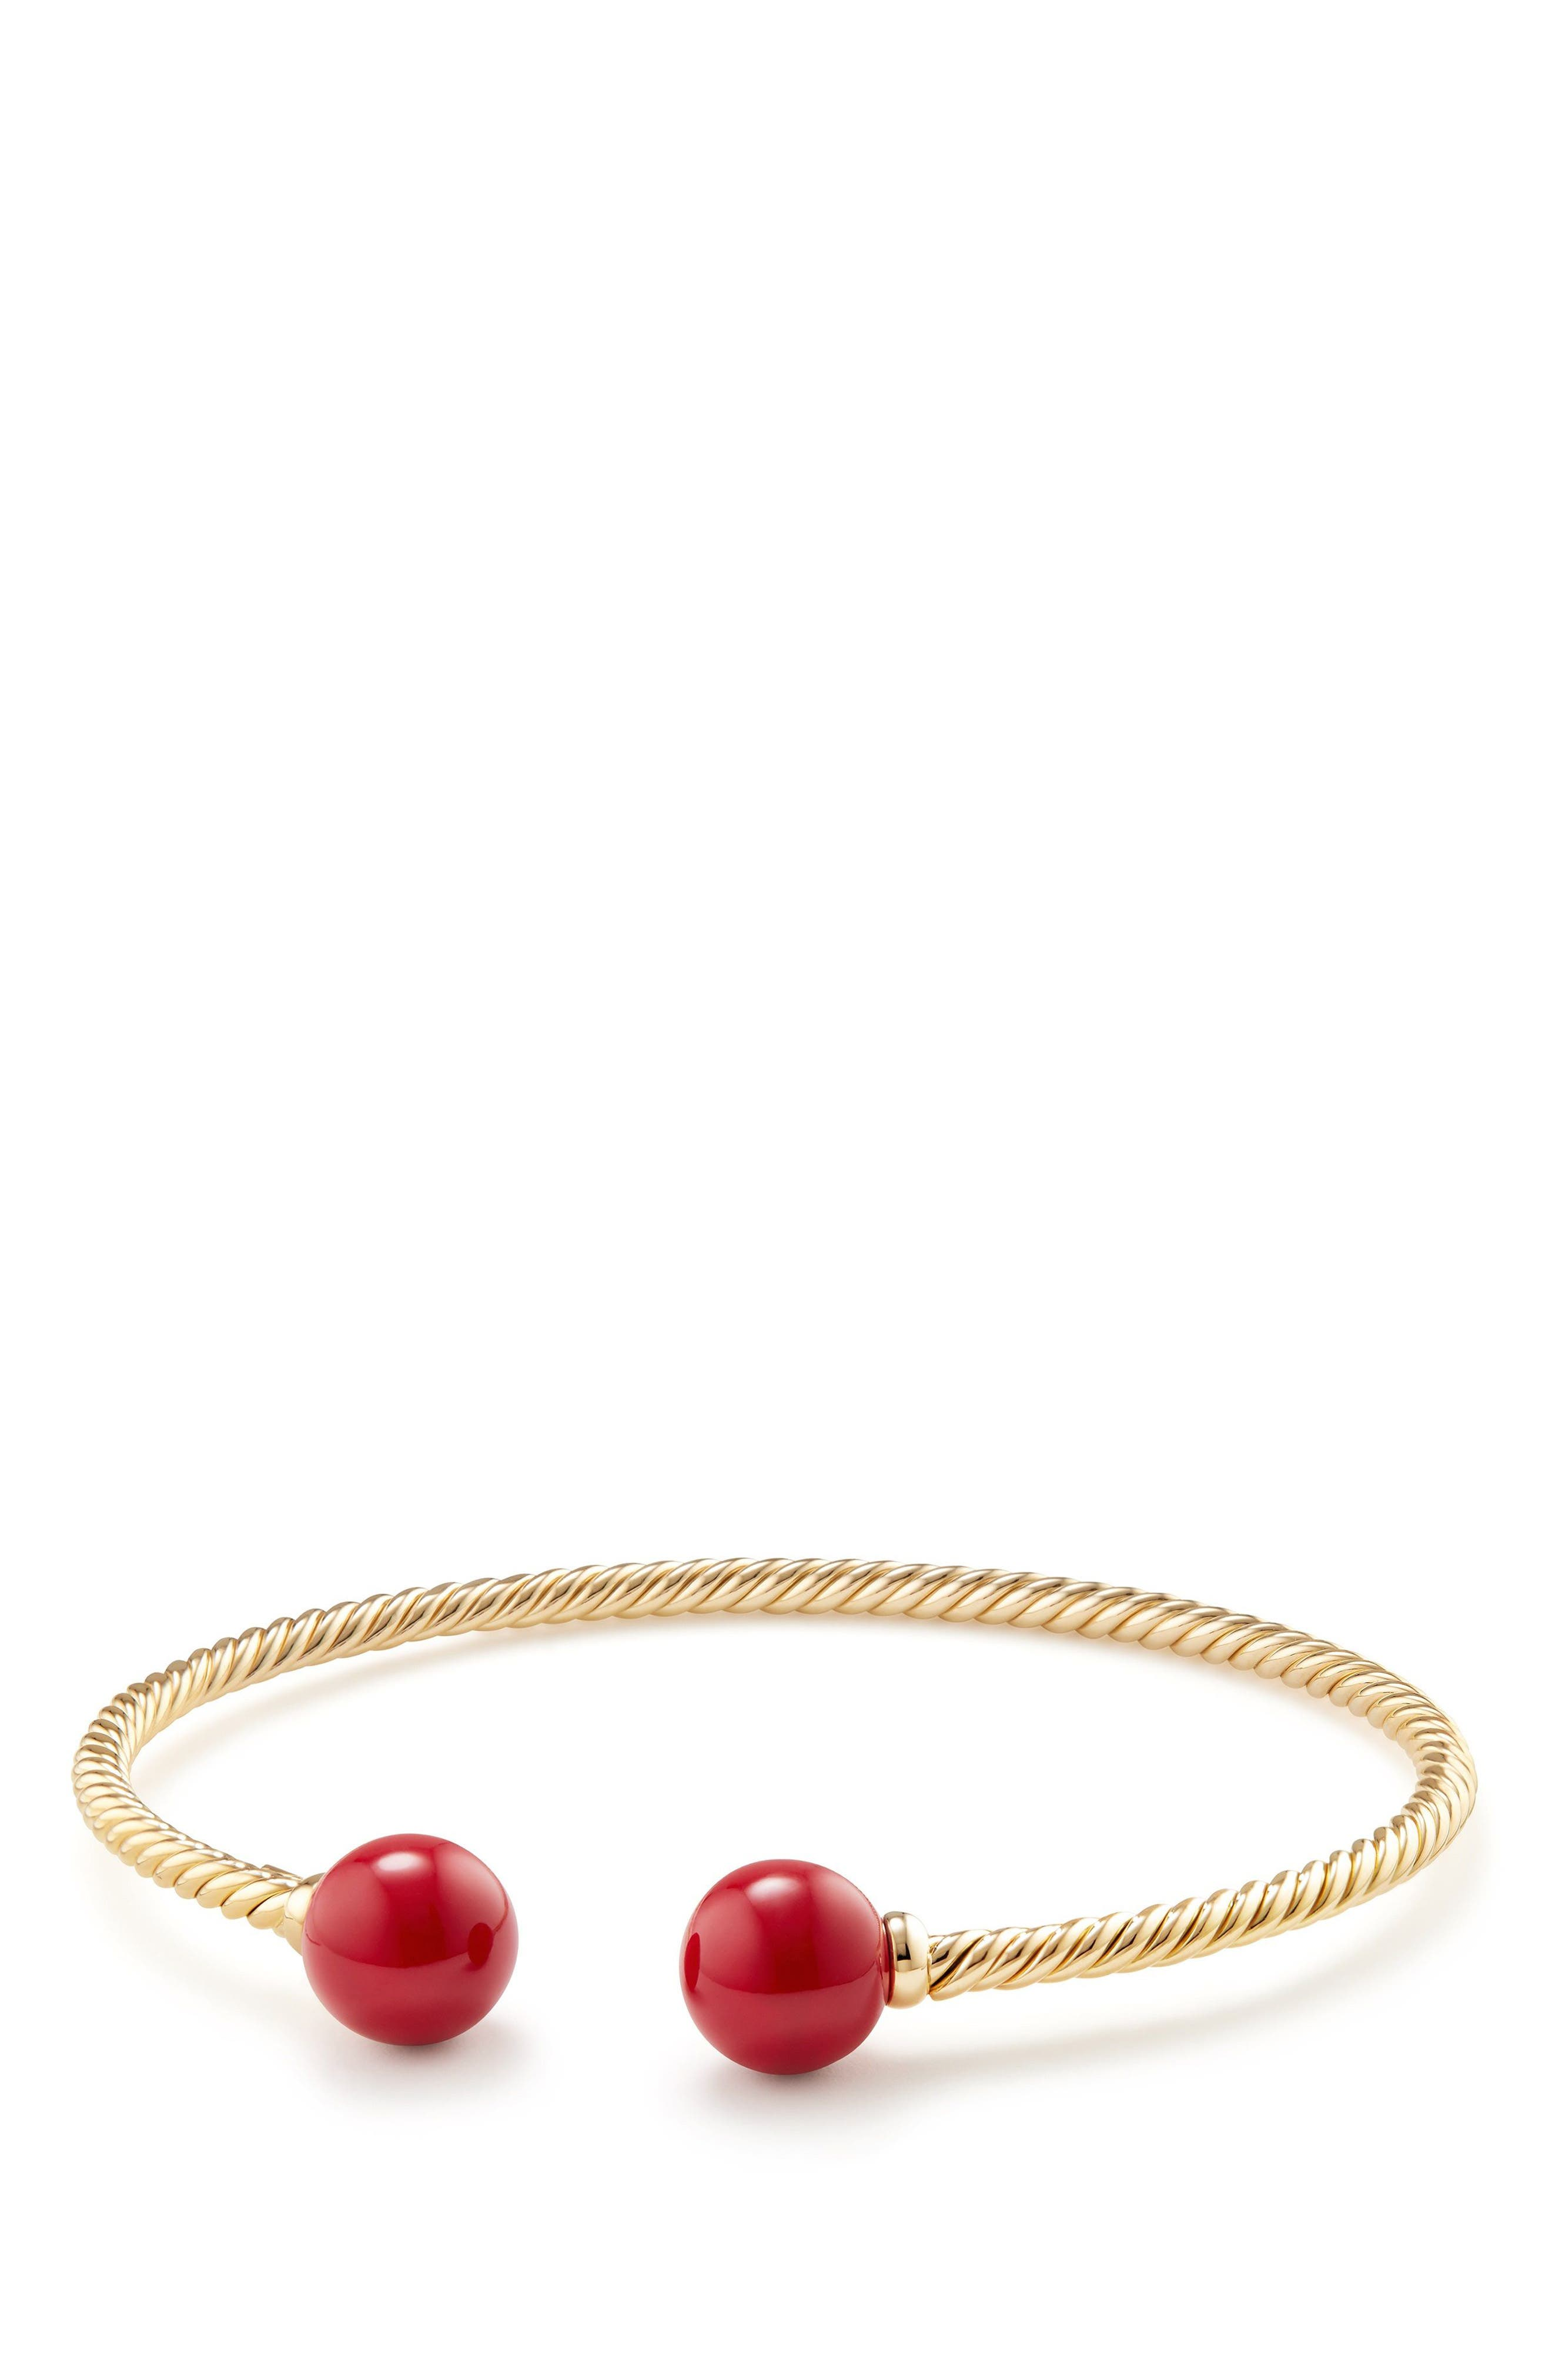 Solari Bead Bracelet with 18K Gold and Red Enamel,                         Main,                         color, Yellow Gold/ Red